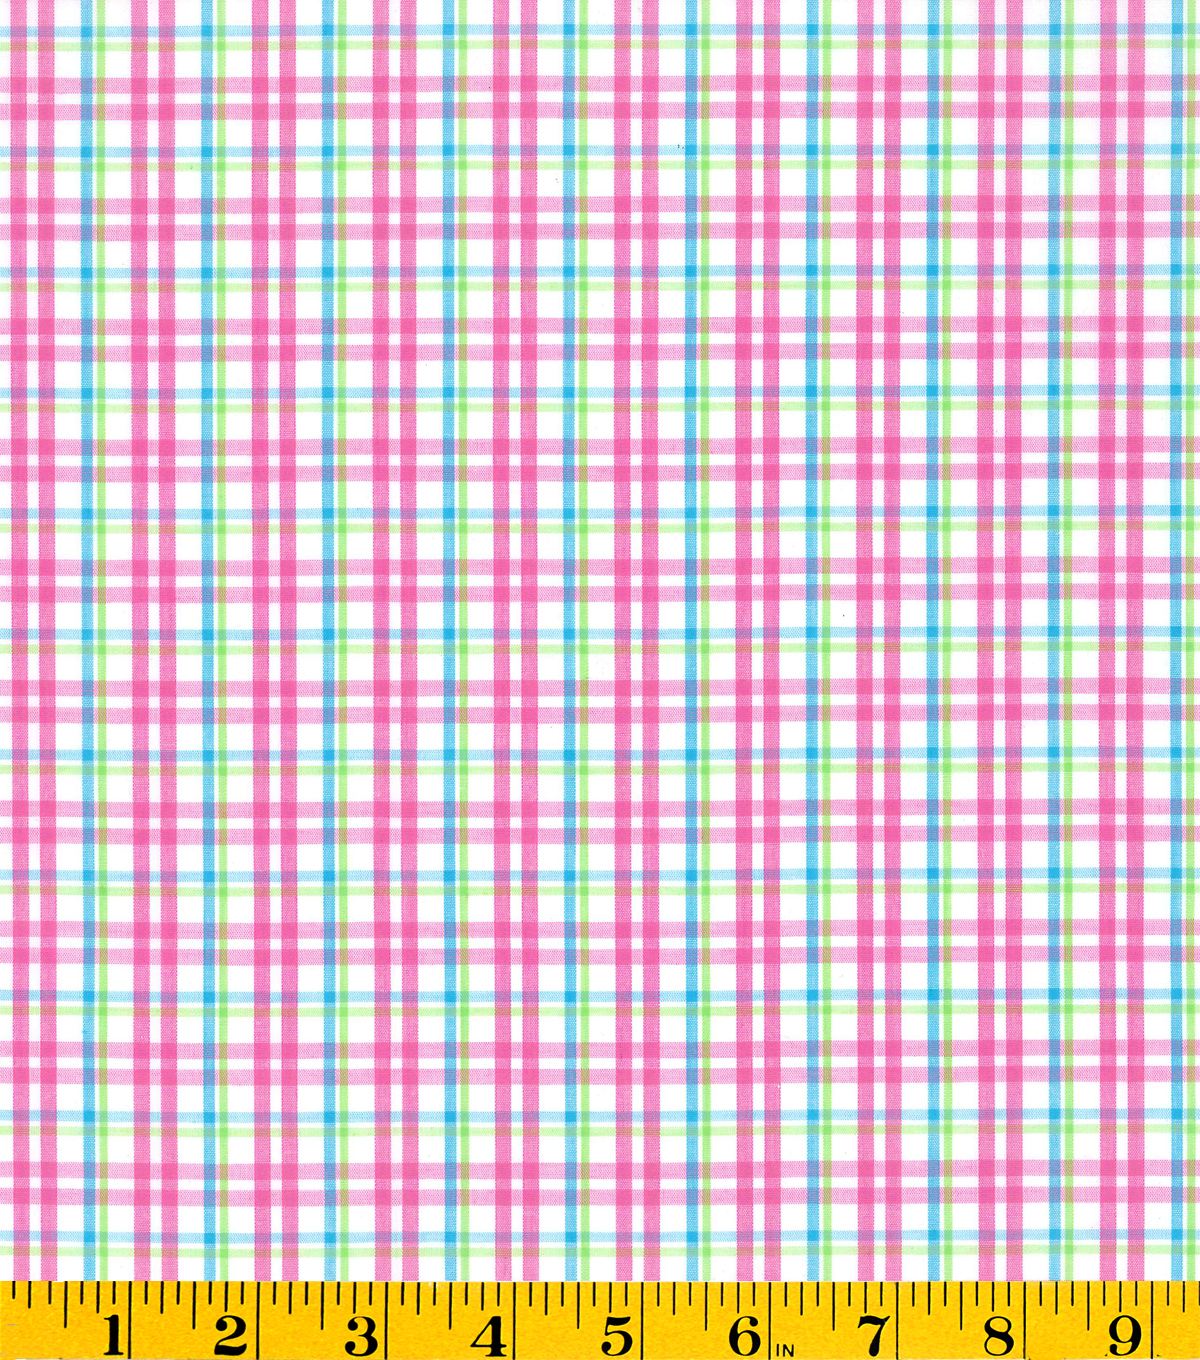 Summerville Woven Plaid Fabric-Pink/Green/Teal